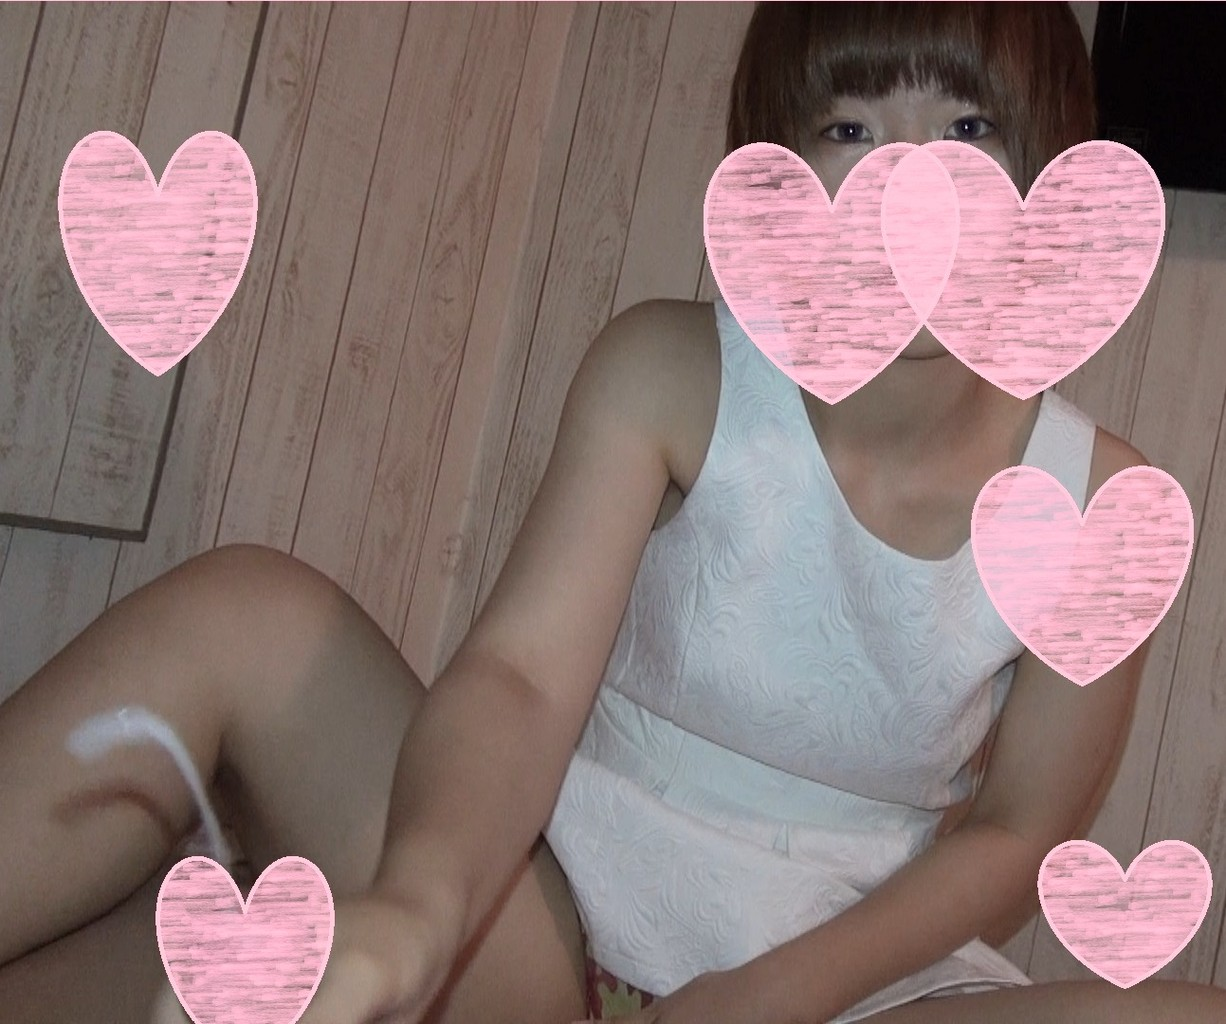 Pwife-445 Download dmm bittorrent ゆき